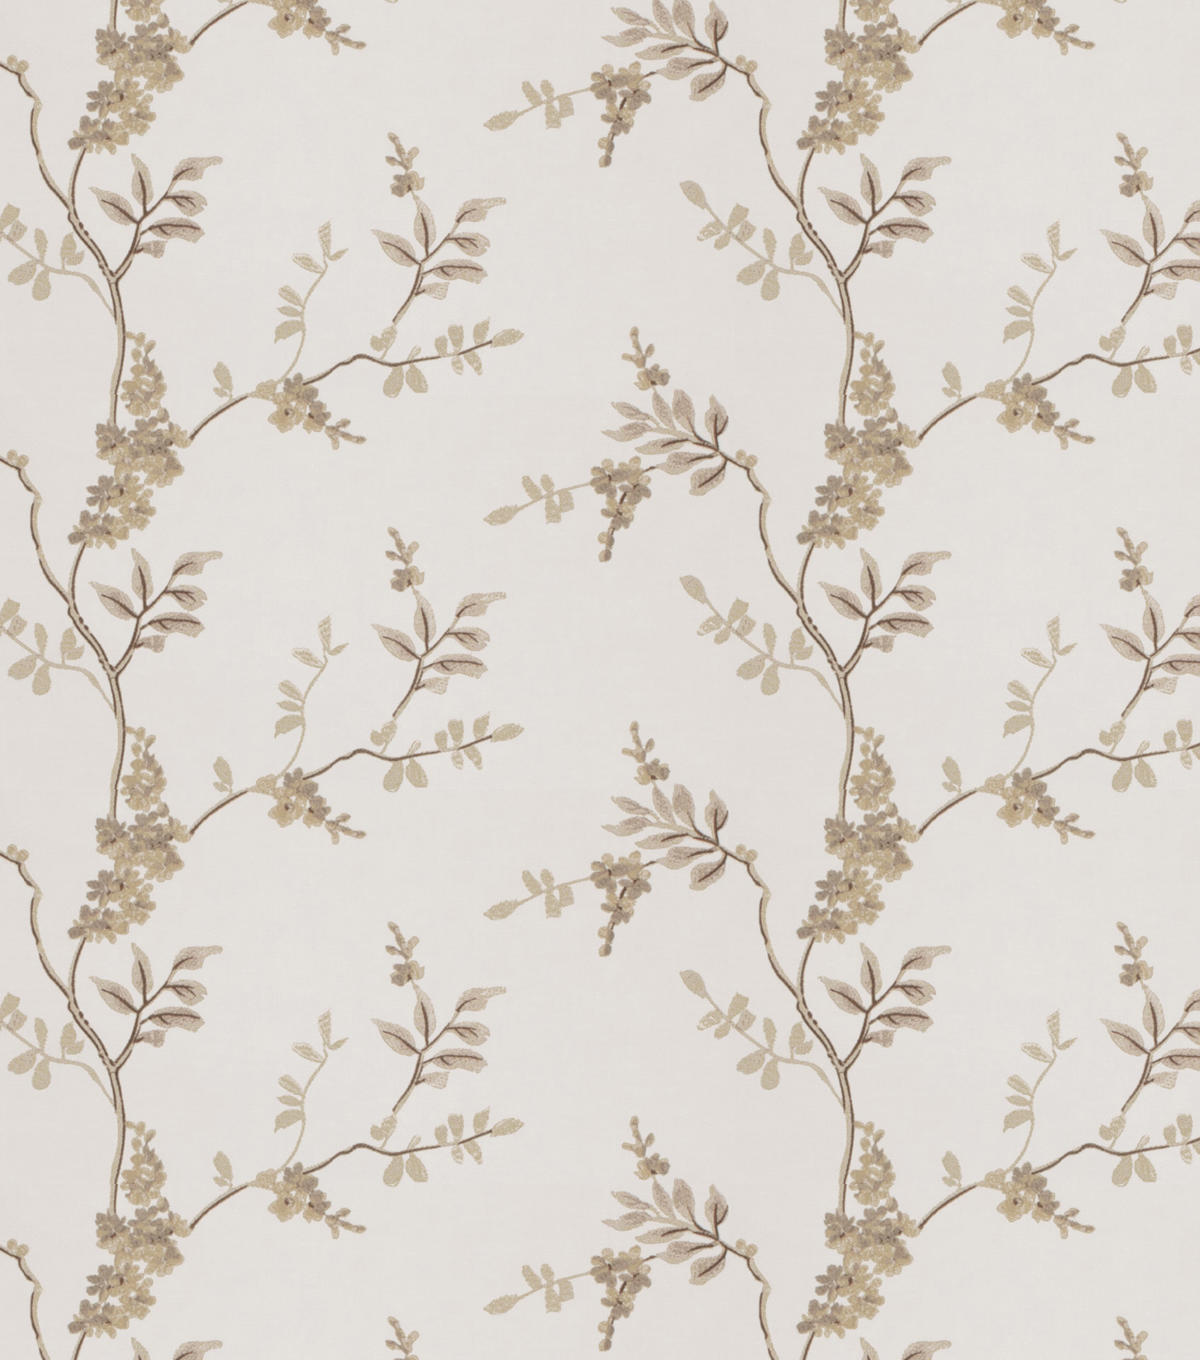 Eaton Square Lightweight Decor Fabric-Rosehips/Linen